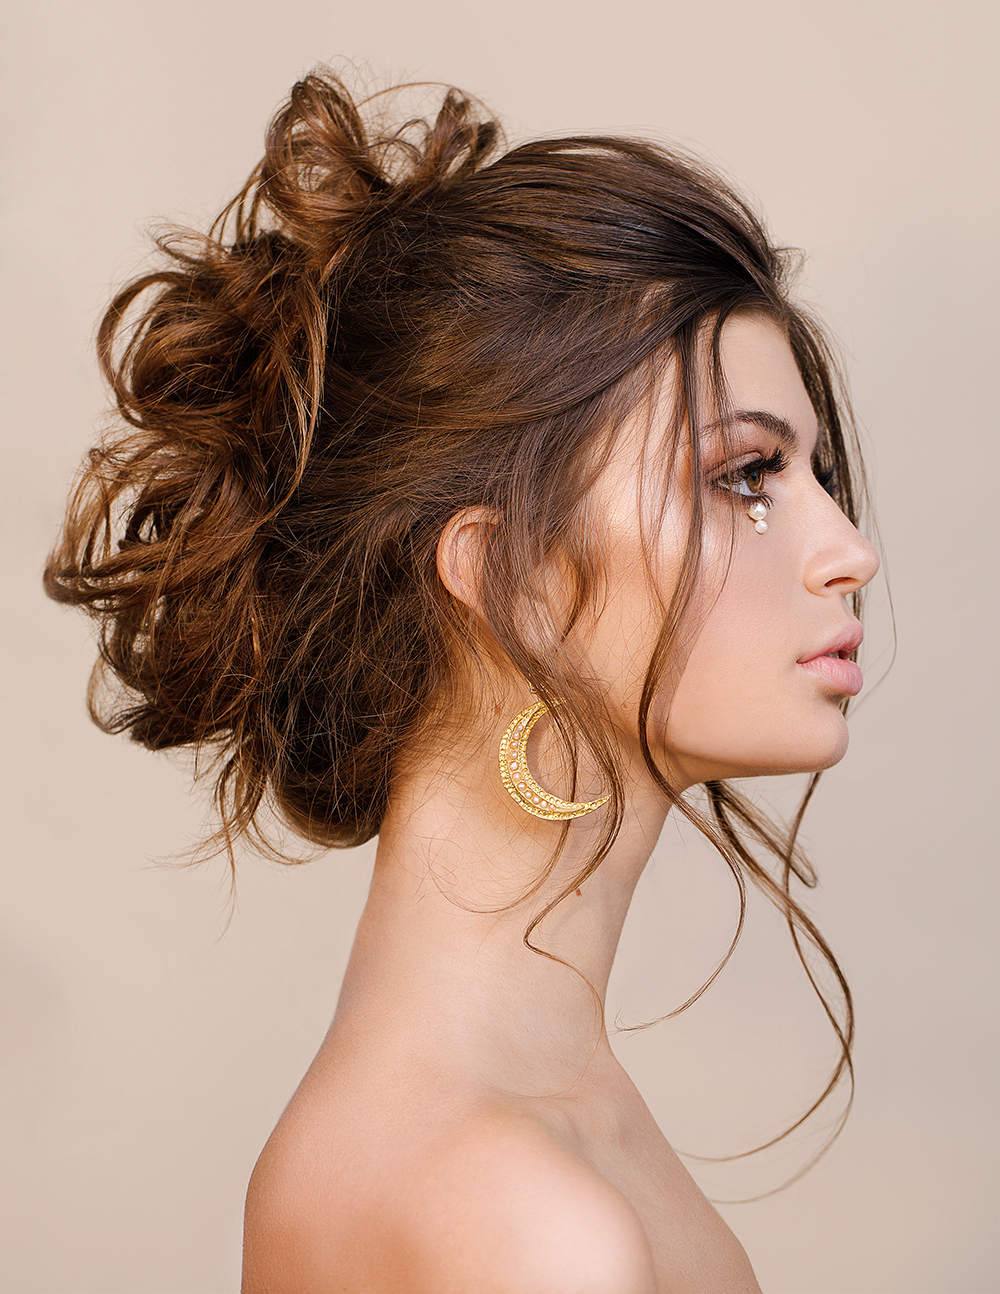 beauty photoshoot, hair and makeup by Storme